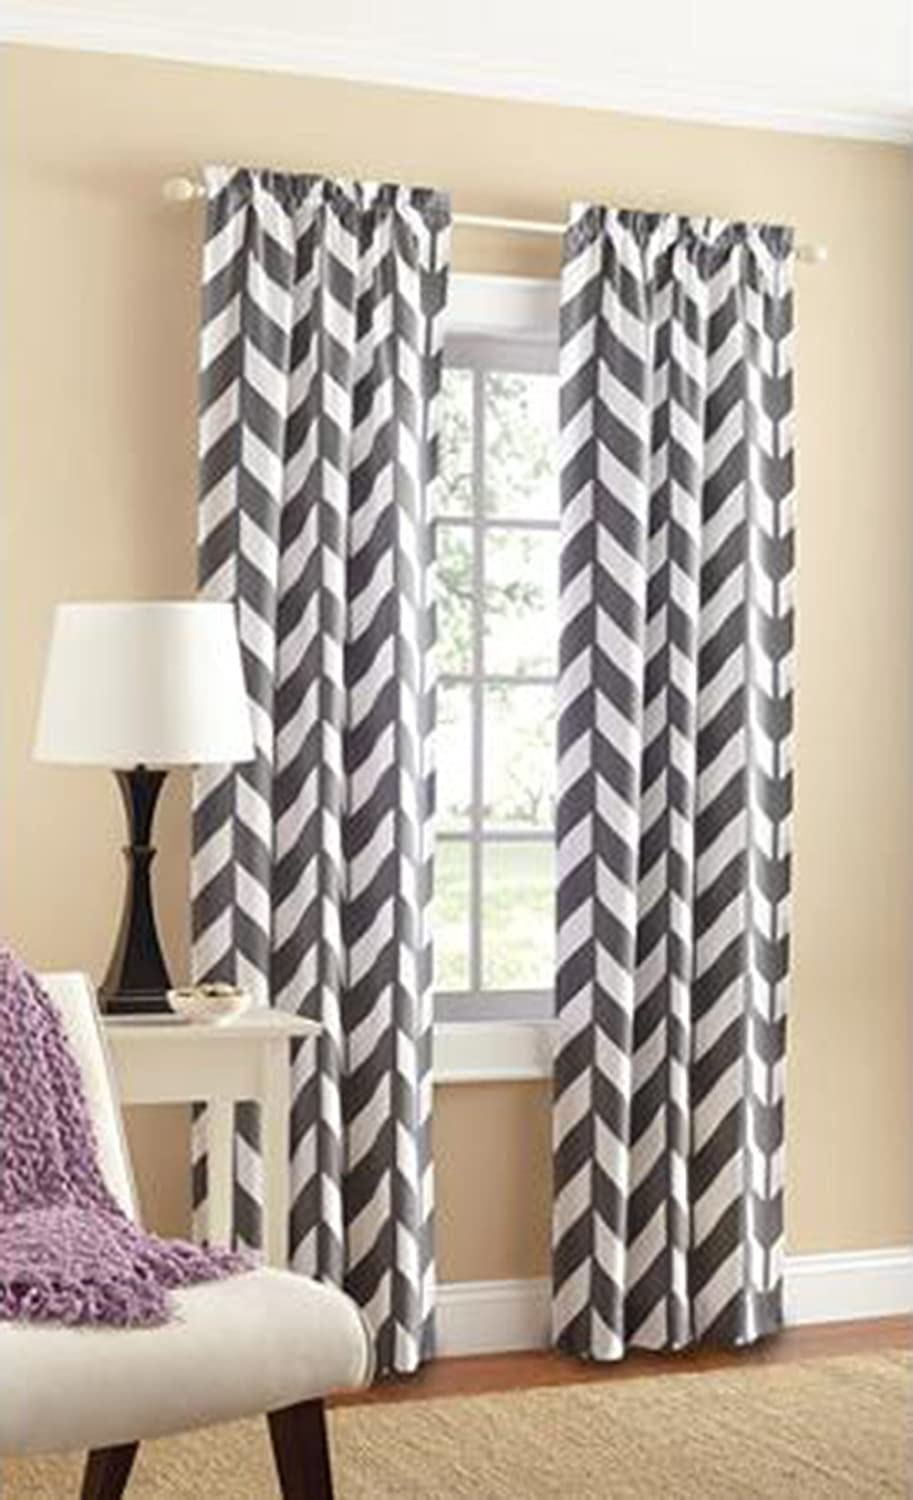 Amazon.com: Mainstays Chevron Polyester/Cotton Curtain Panels, Set of 2,  Grey/White, 56 Inch x 84 Inch: Home & Kitchen - Amazon.com: Mainstays Chevron Polyester/Cotton Curtain Panels, Set